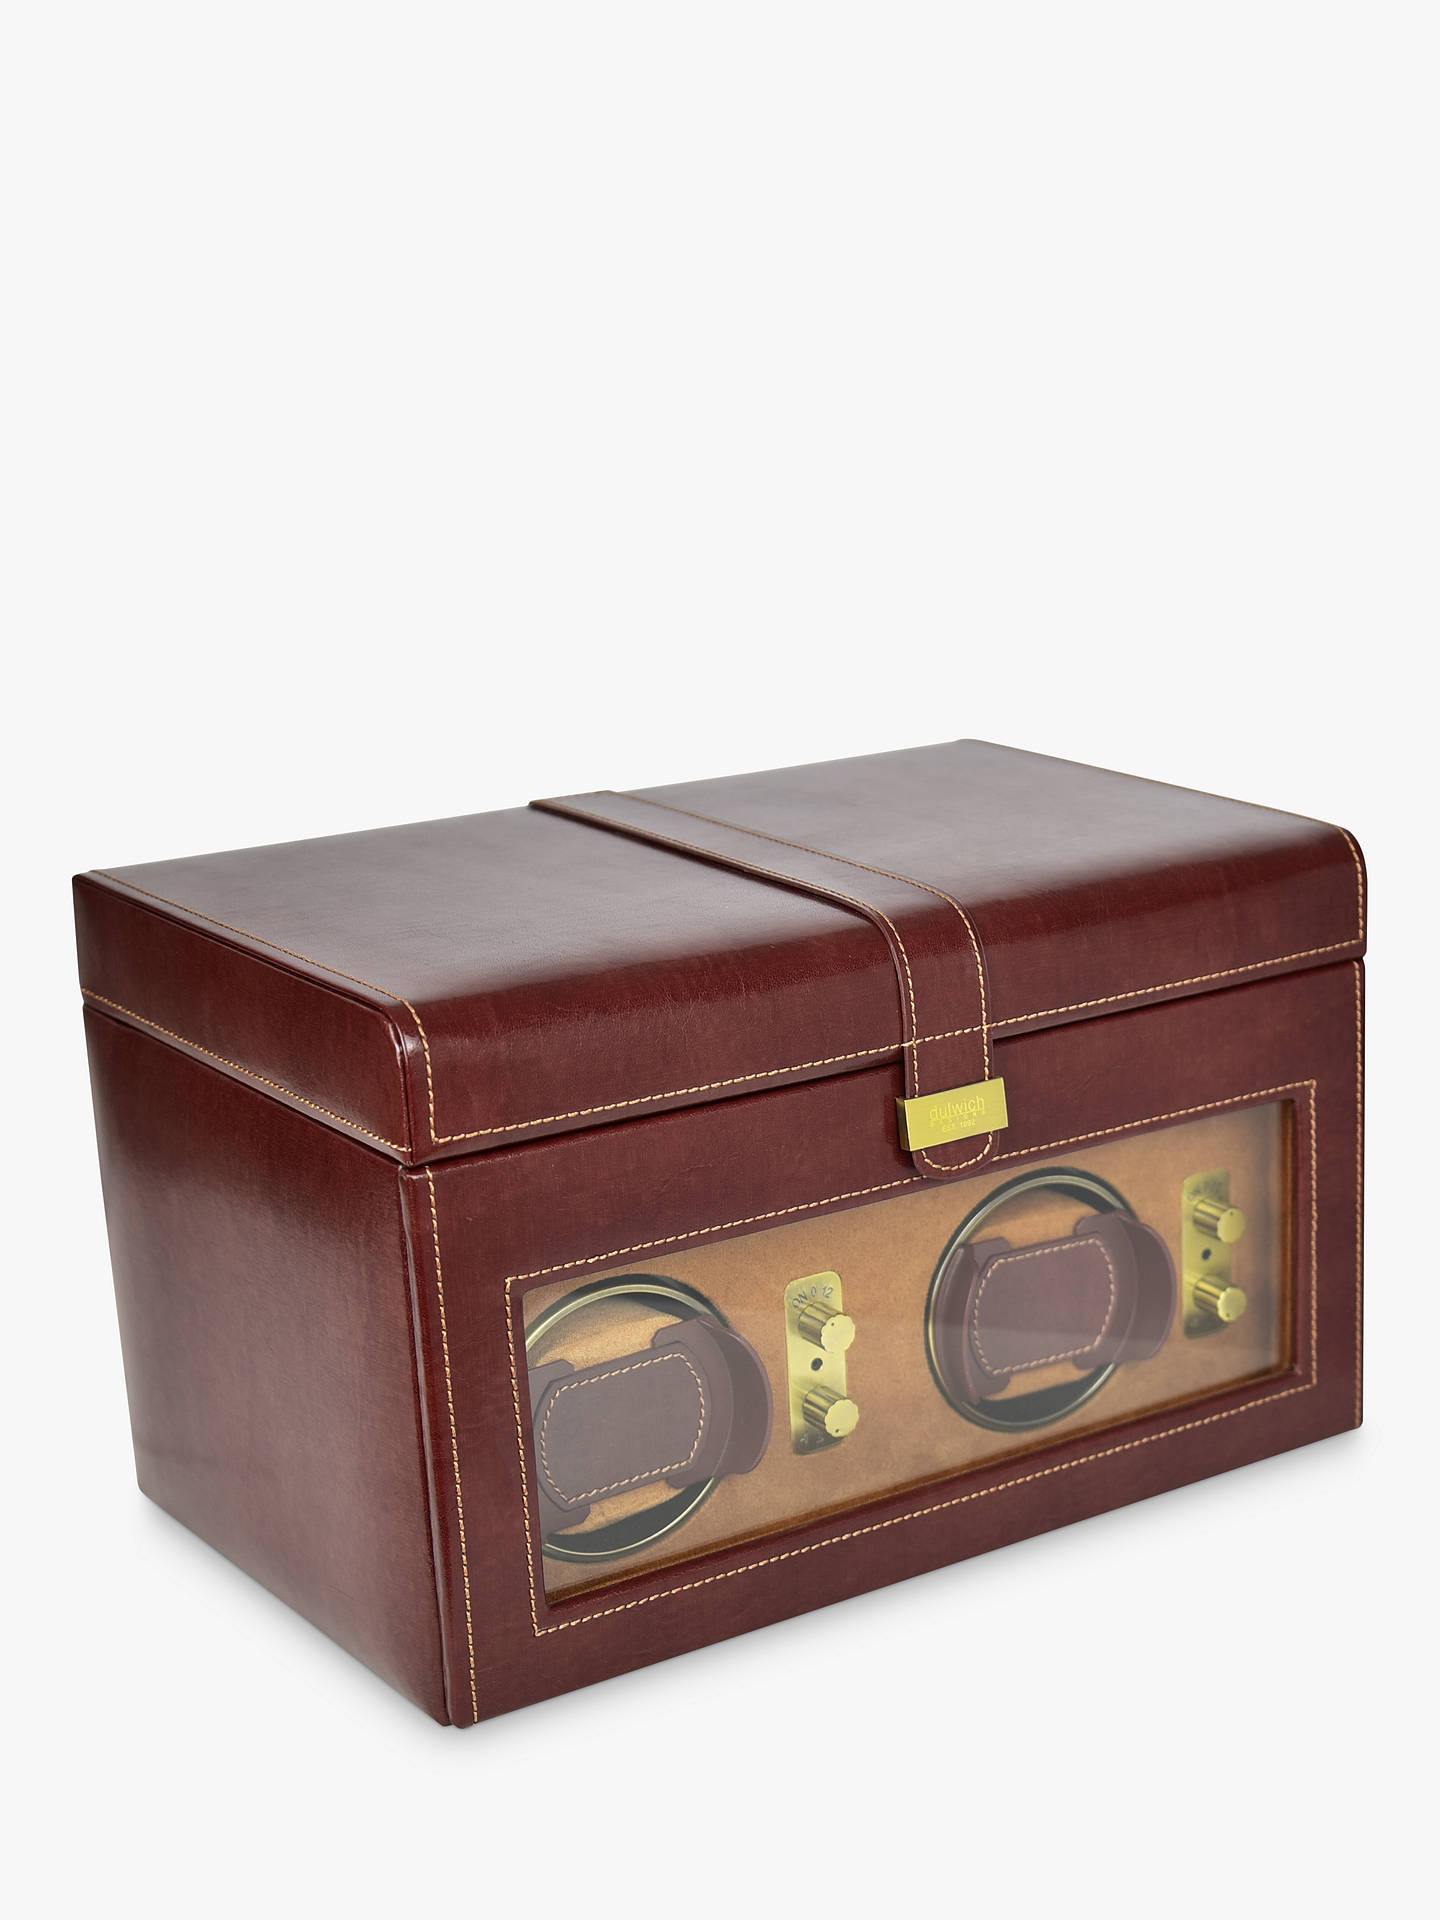 Dulwich Designs Heritage Double Watch Winder Box At John Lewis